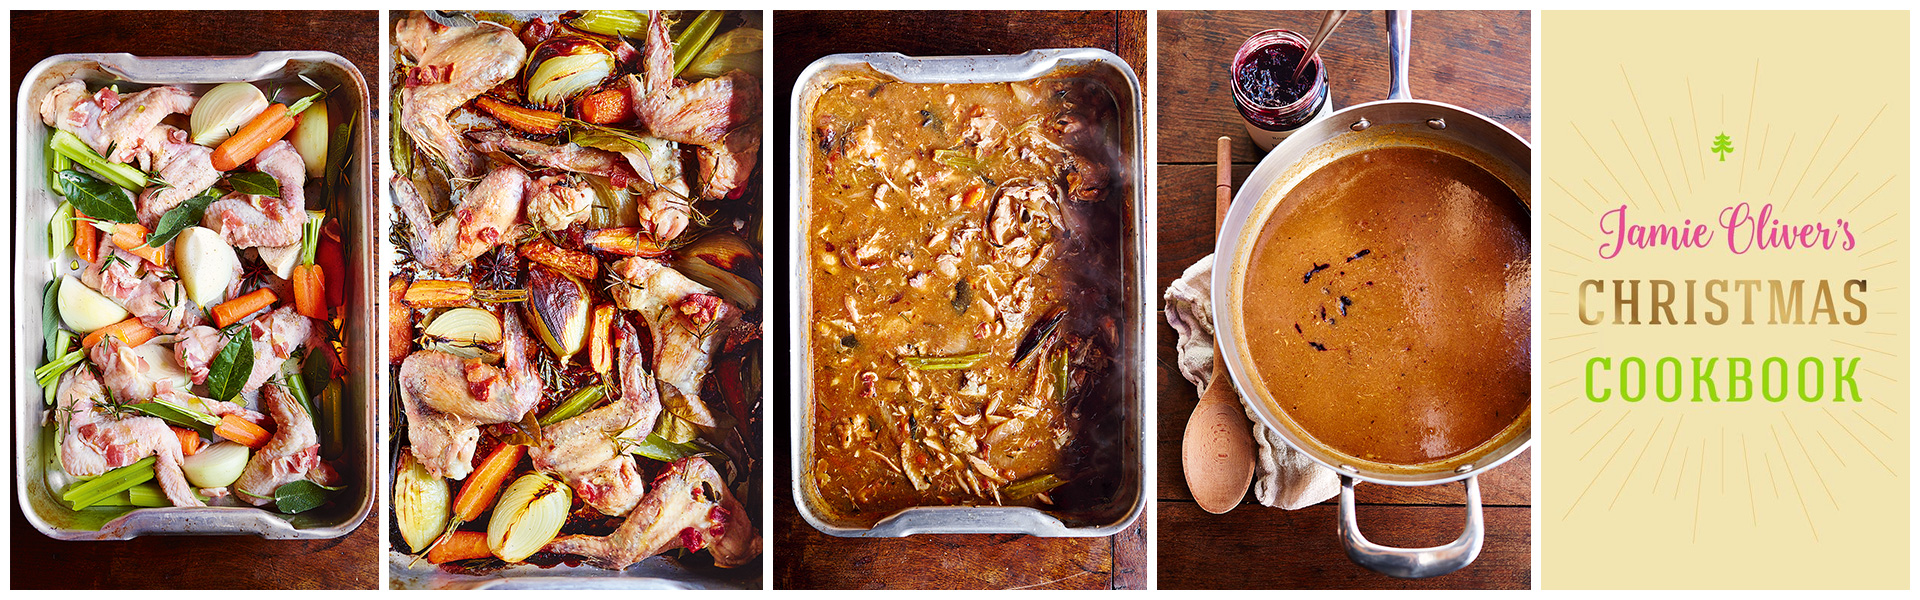 Jamie oliver get ahead gravy perfect for your big day turkey jamie oliver get ahead gravy perfect for your big day turkey recipe forumfinder Images